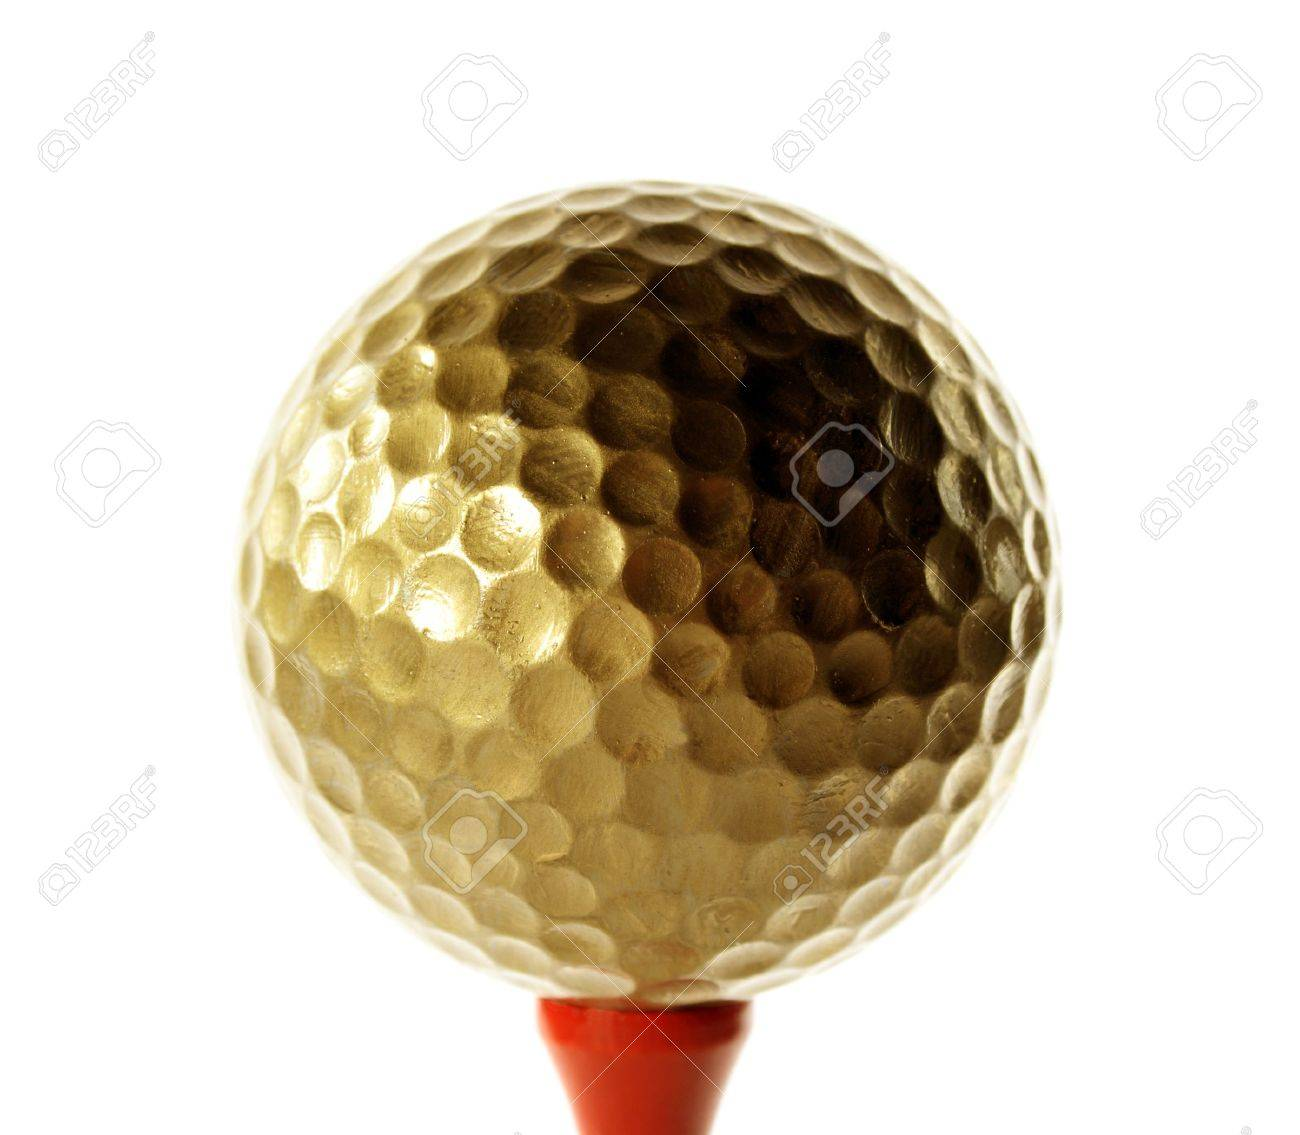 Golfball in gold for luxury play Stock Photo - 2530466